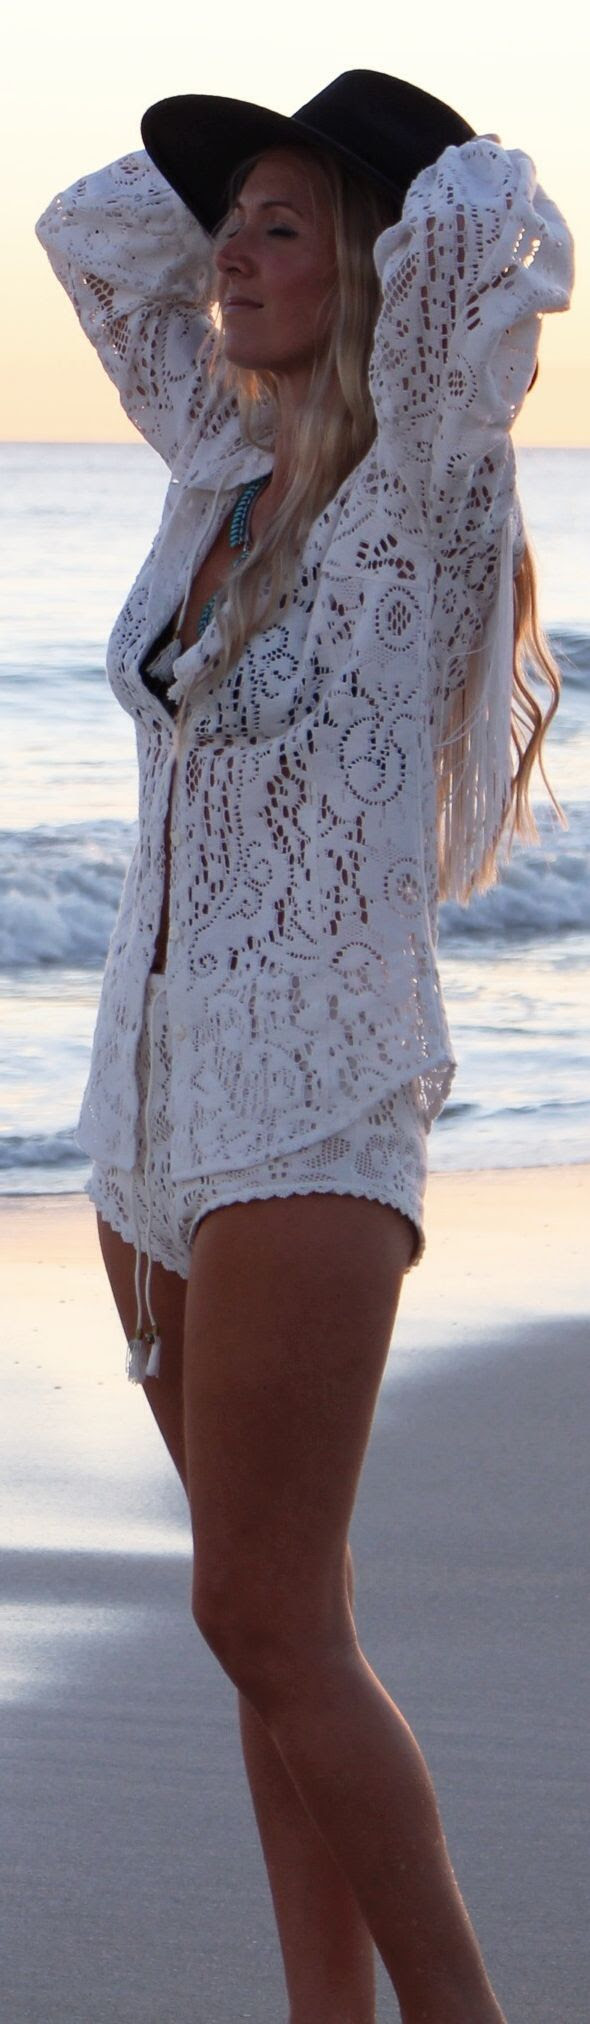 Free People White Beach Long Sleeve Crochet Semi-sheer Button Up